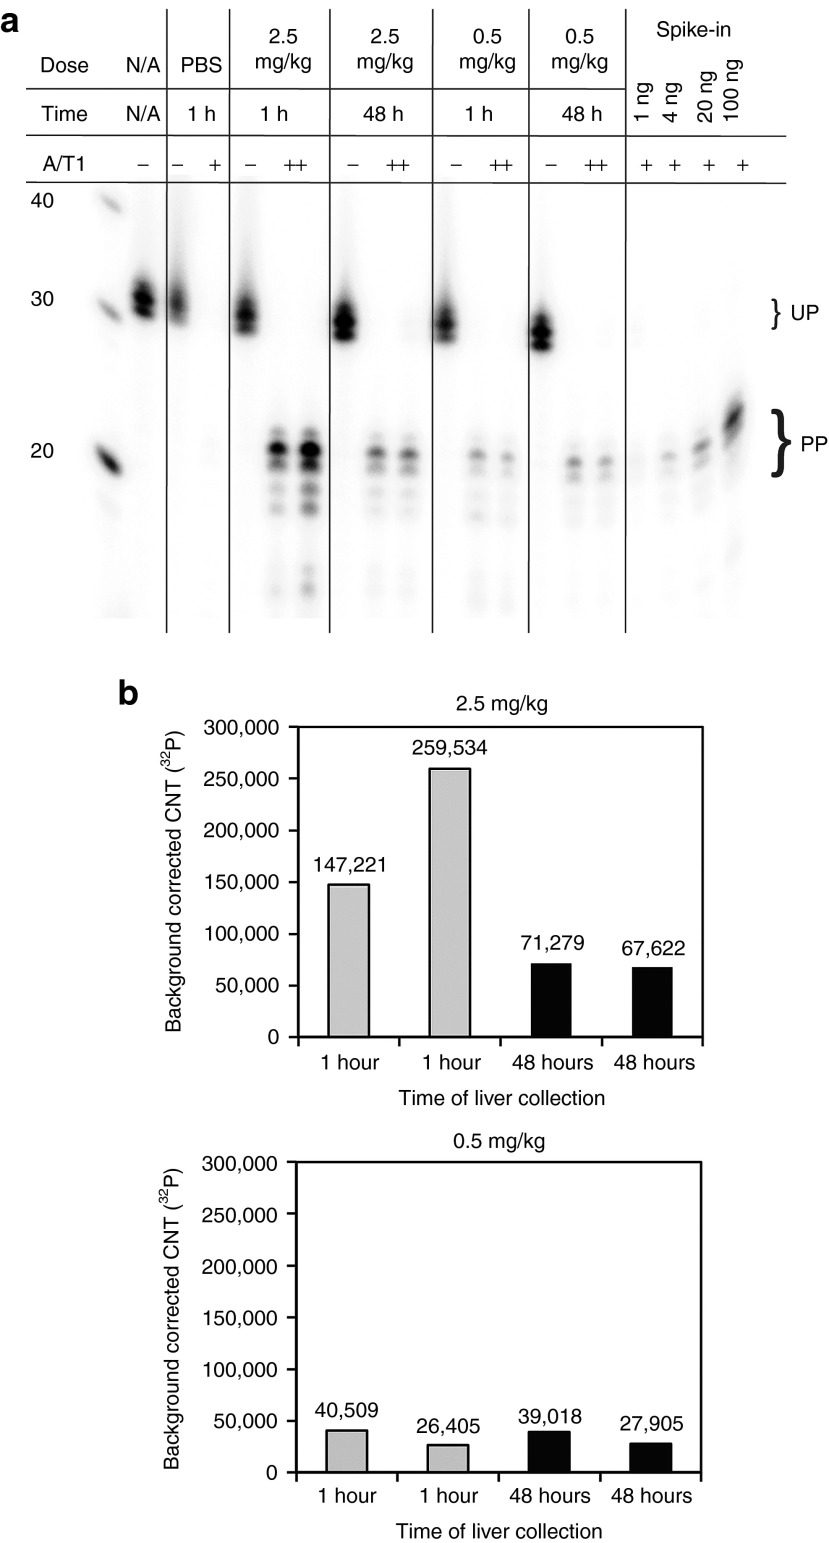 Liver uptake of LNP-SG220 in CD1 mice. ( a ) Denaturing 10% PAGE analysis of RNase protection assay to monitor SG220 present in livers of CD1 mice at the indicated doses and time points. A mouse injected with PBS only was used as a control (PBS). Bands corresponding to undigested probe and probe protected after RNase A/T1 digestion are labeled. For quantification, the amounts of SG220 indicated in the last four lanes were spiked into 50 µg of total liver RNA from untreated mice to generate a calibration curve for the quantification of the liver uptake of SG220. PP, protected probe; UP, undigested full-length probe. ( b ) Plots of background corrected counts ( 32 P) for individual mice for dosing groups 0.5 and 2.5 mg/kg. LNP, lipid nanoparticles.